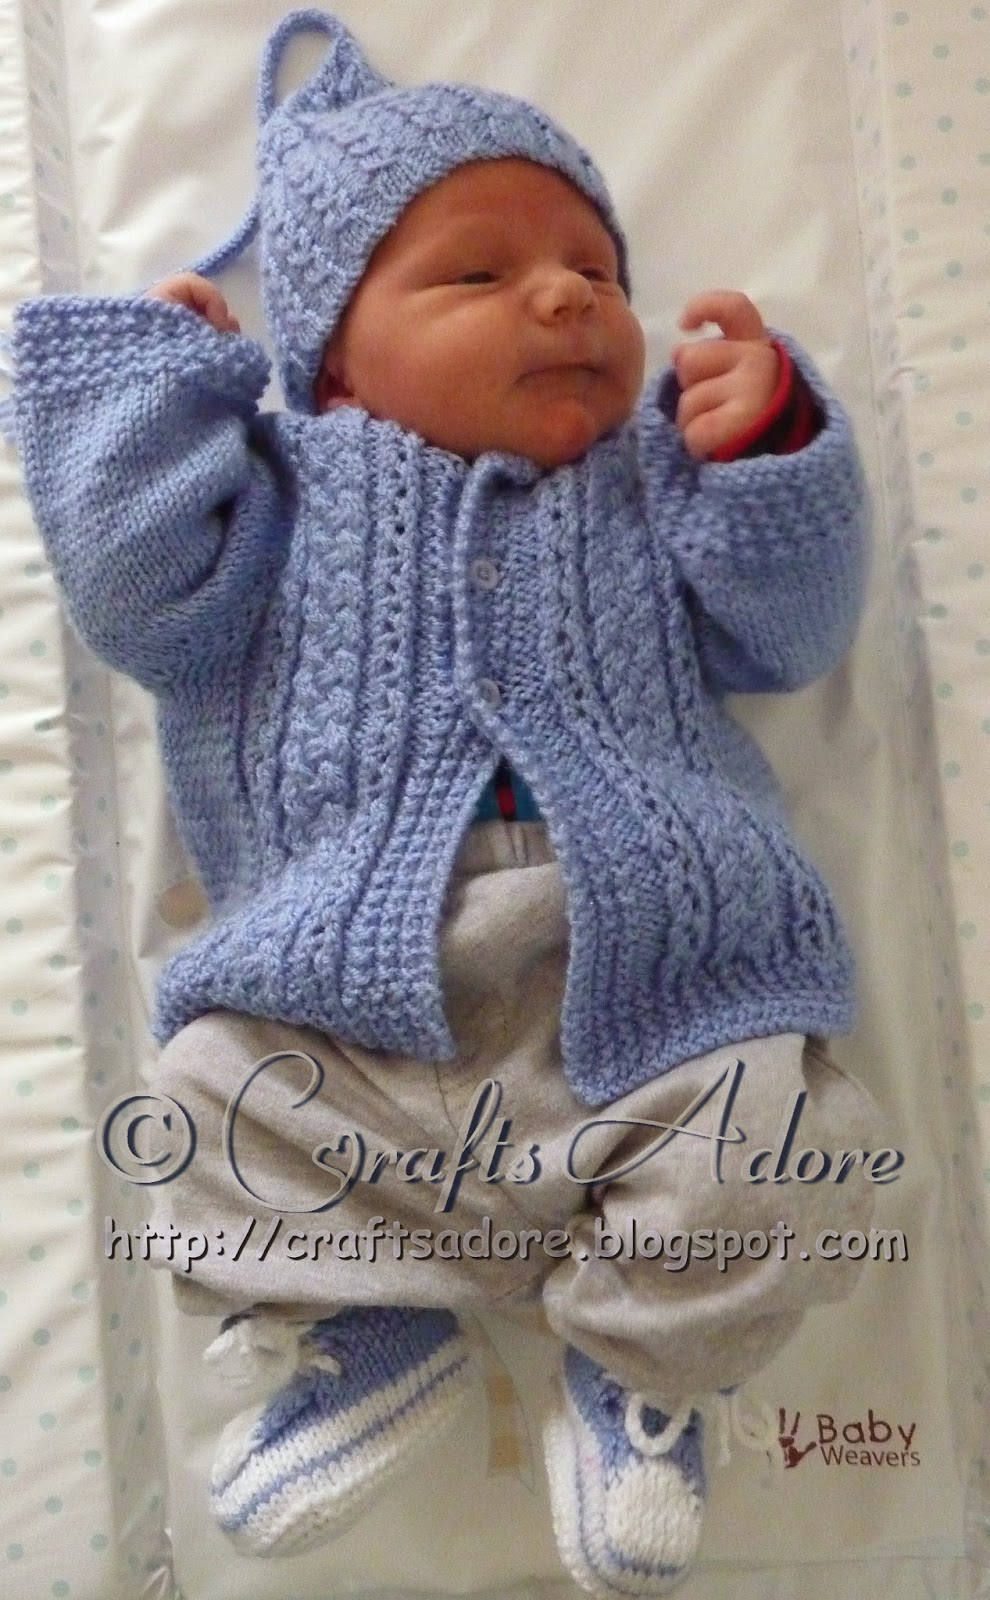 Free Baby Sweater Knitting Patterns : CraftsAdore: